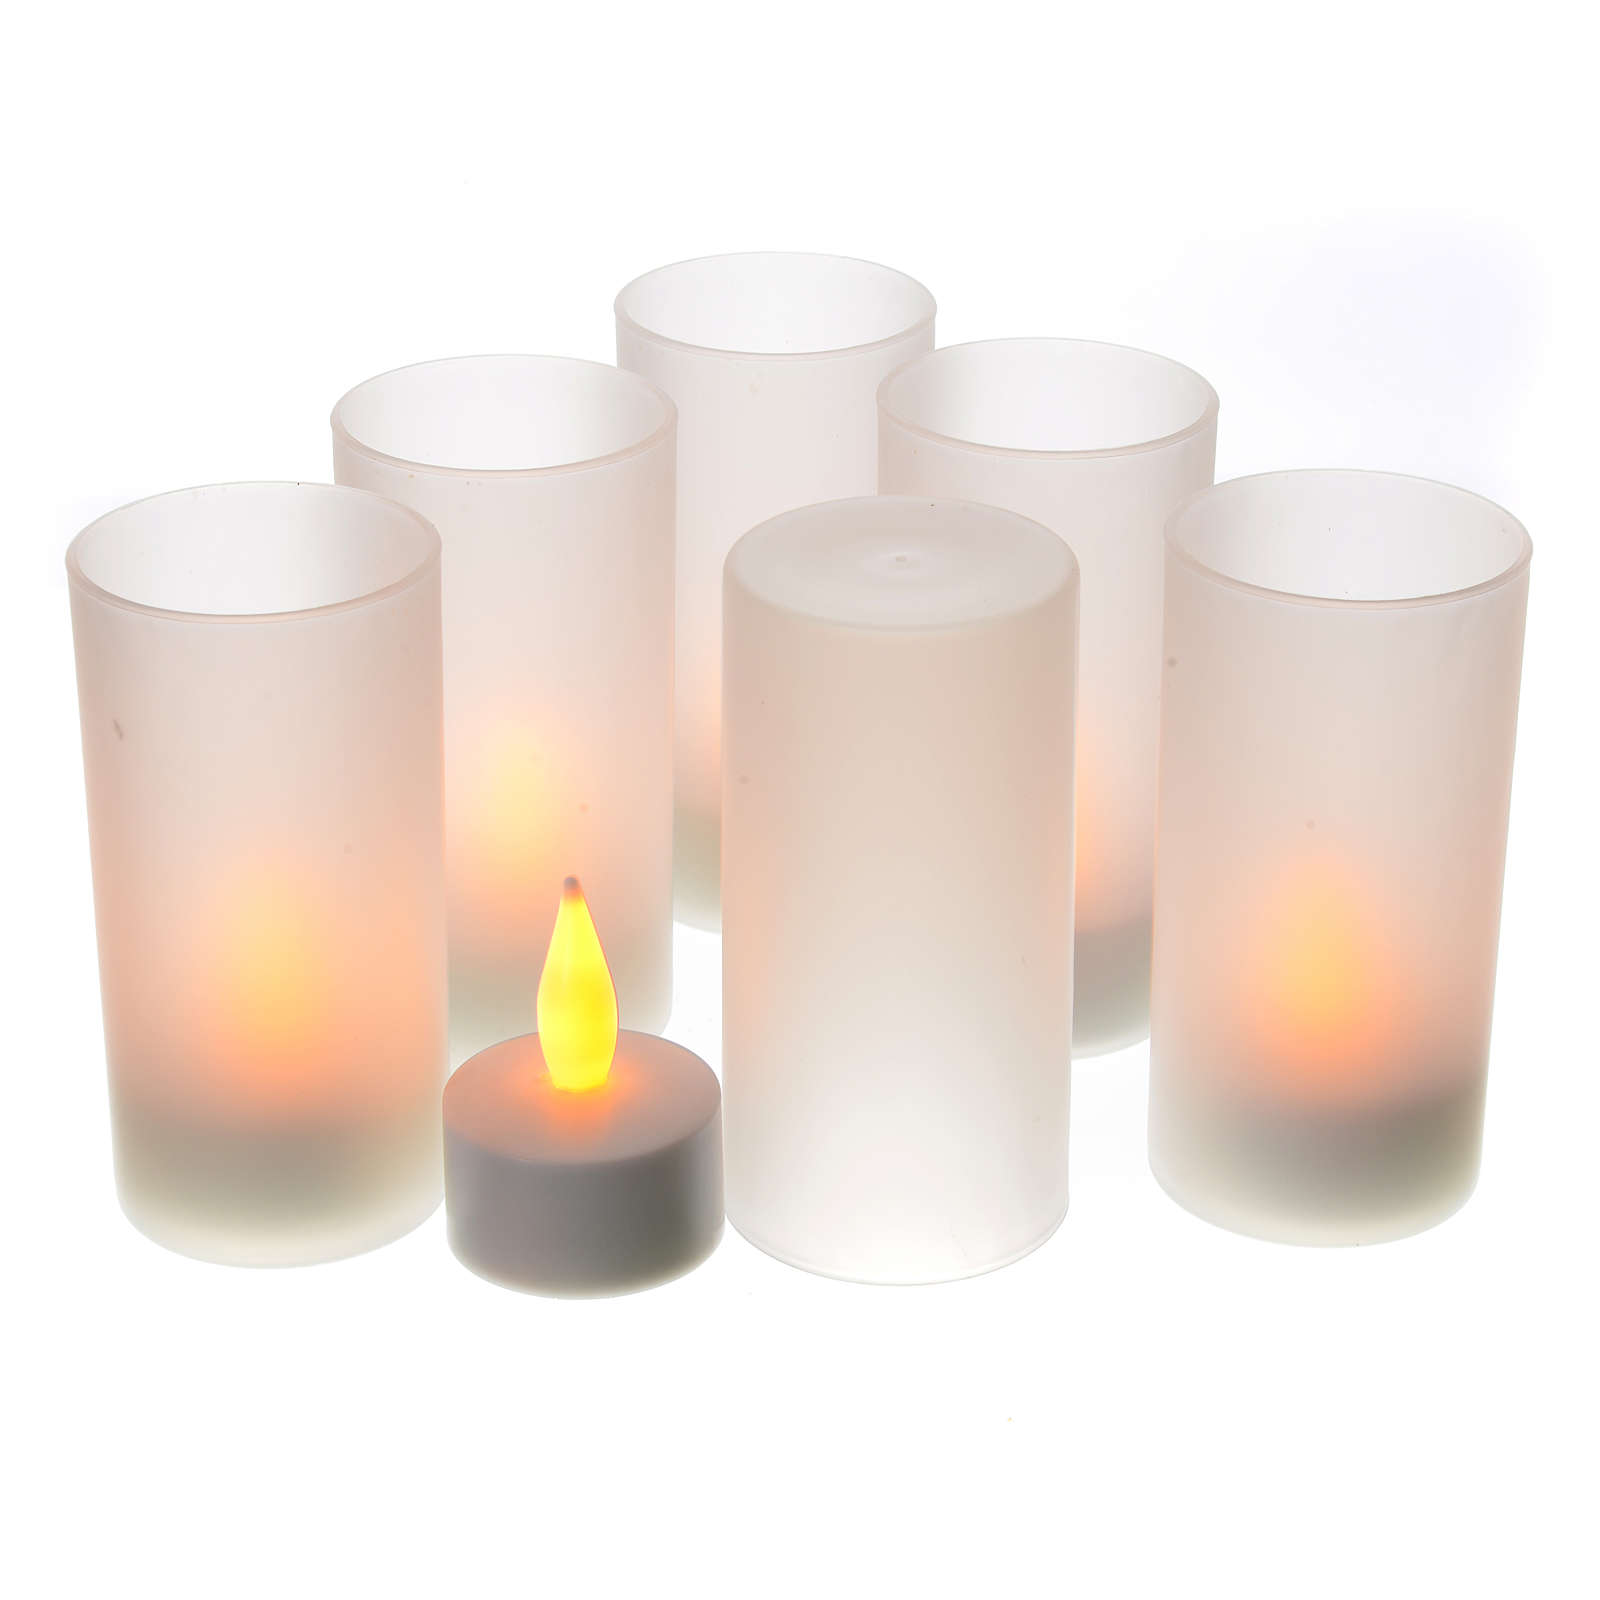 Lumini tealights Led ricaricabili 6 PZ 3